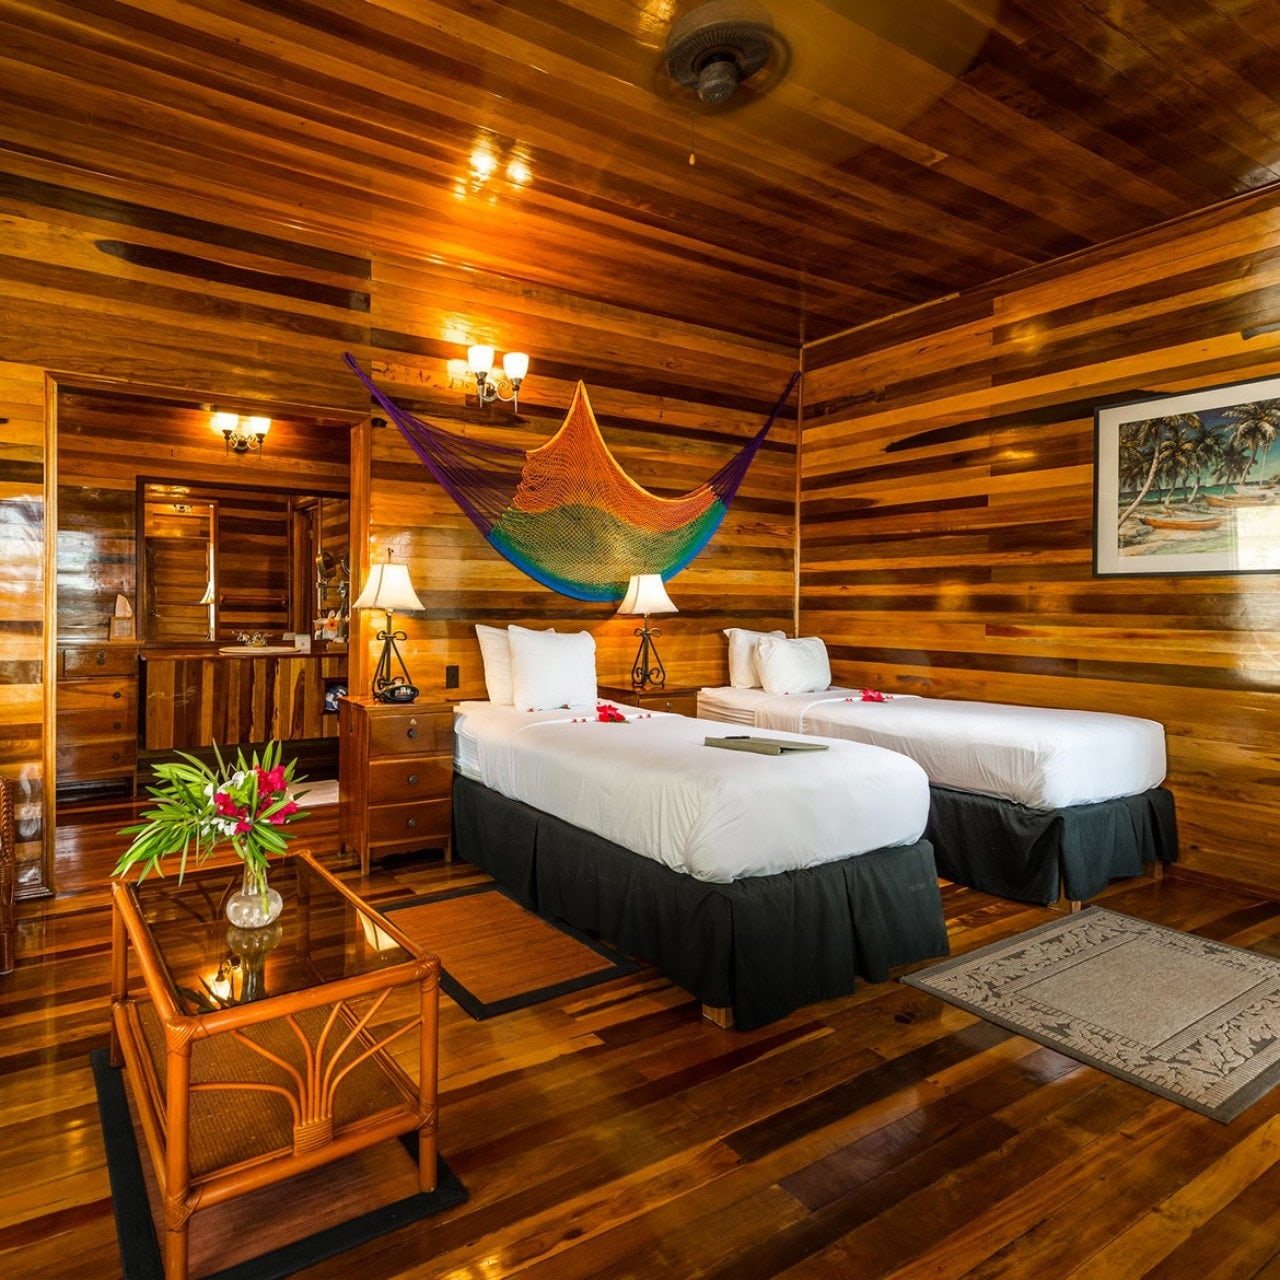 Rich mahogany and teak woodwork add a warm ambiance to a Deluxe Room. Guests have the option of twin beds or a single king.